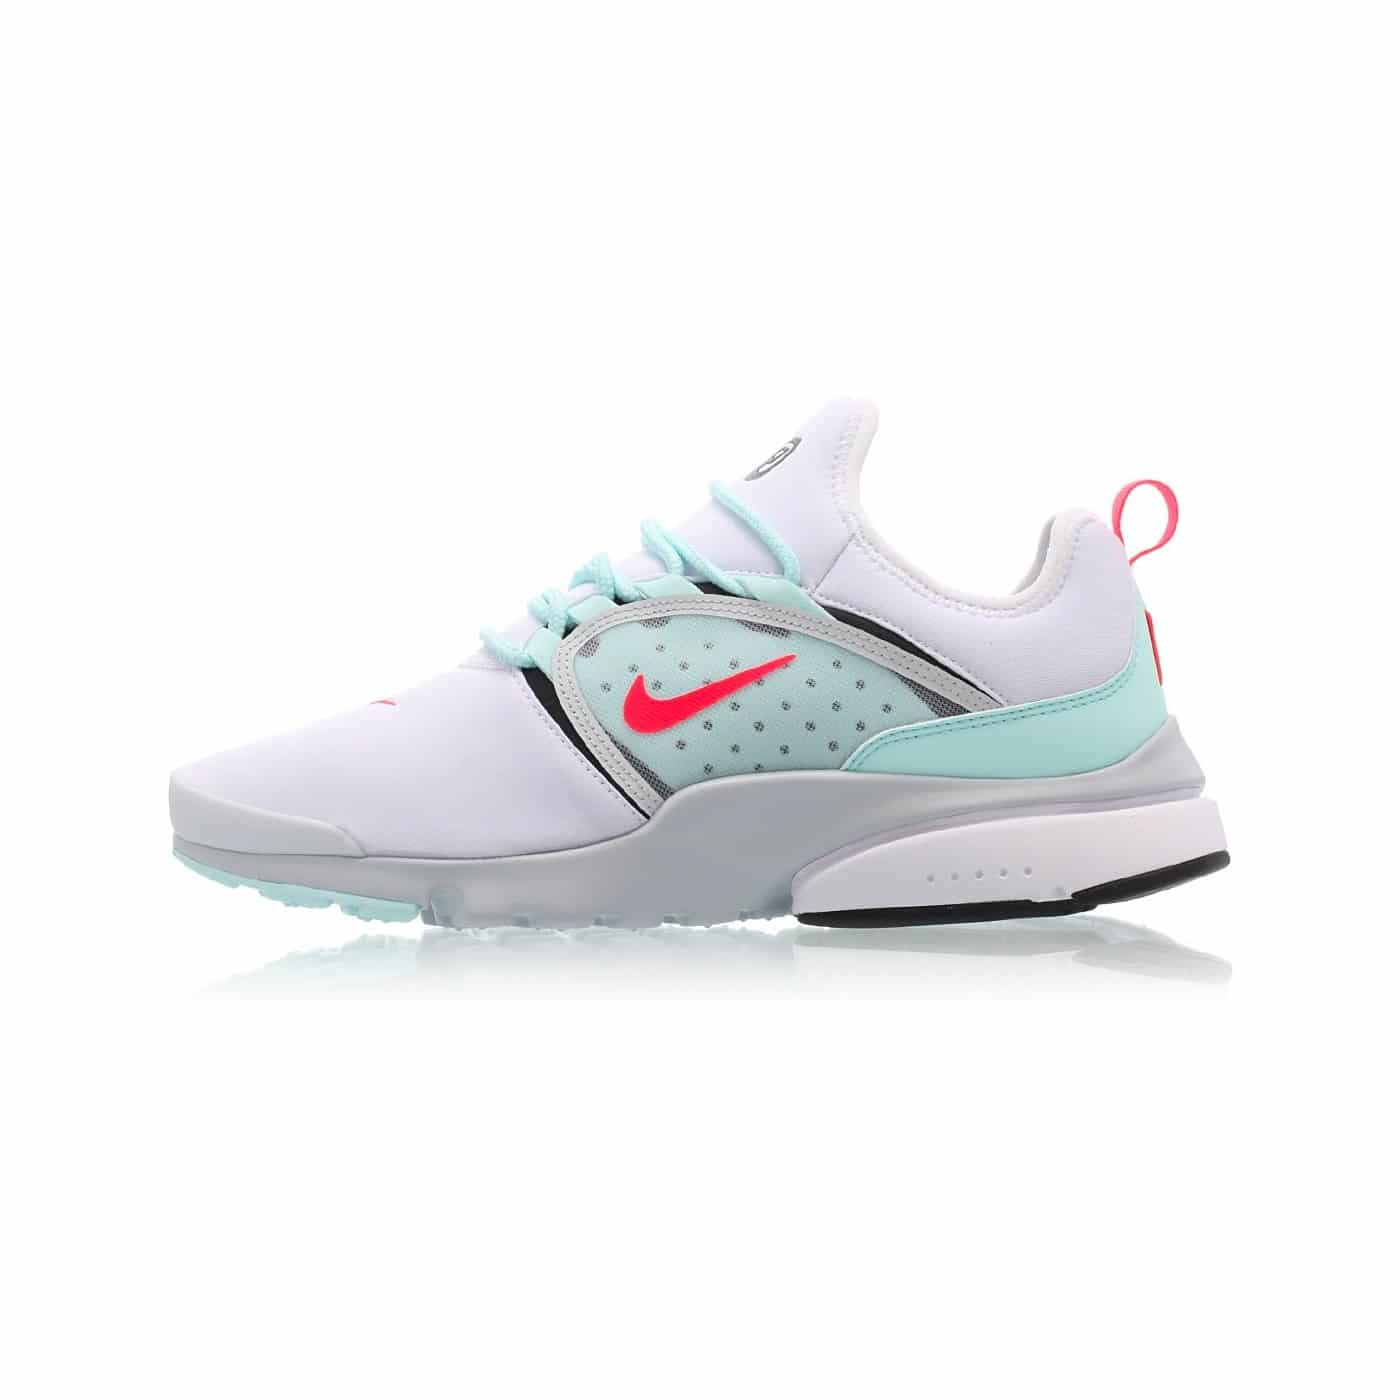 sports shoes c0f59 3aff8 nike-air-presto-fly-world-first